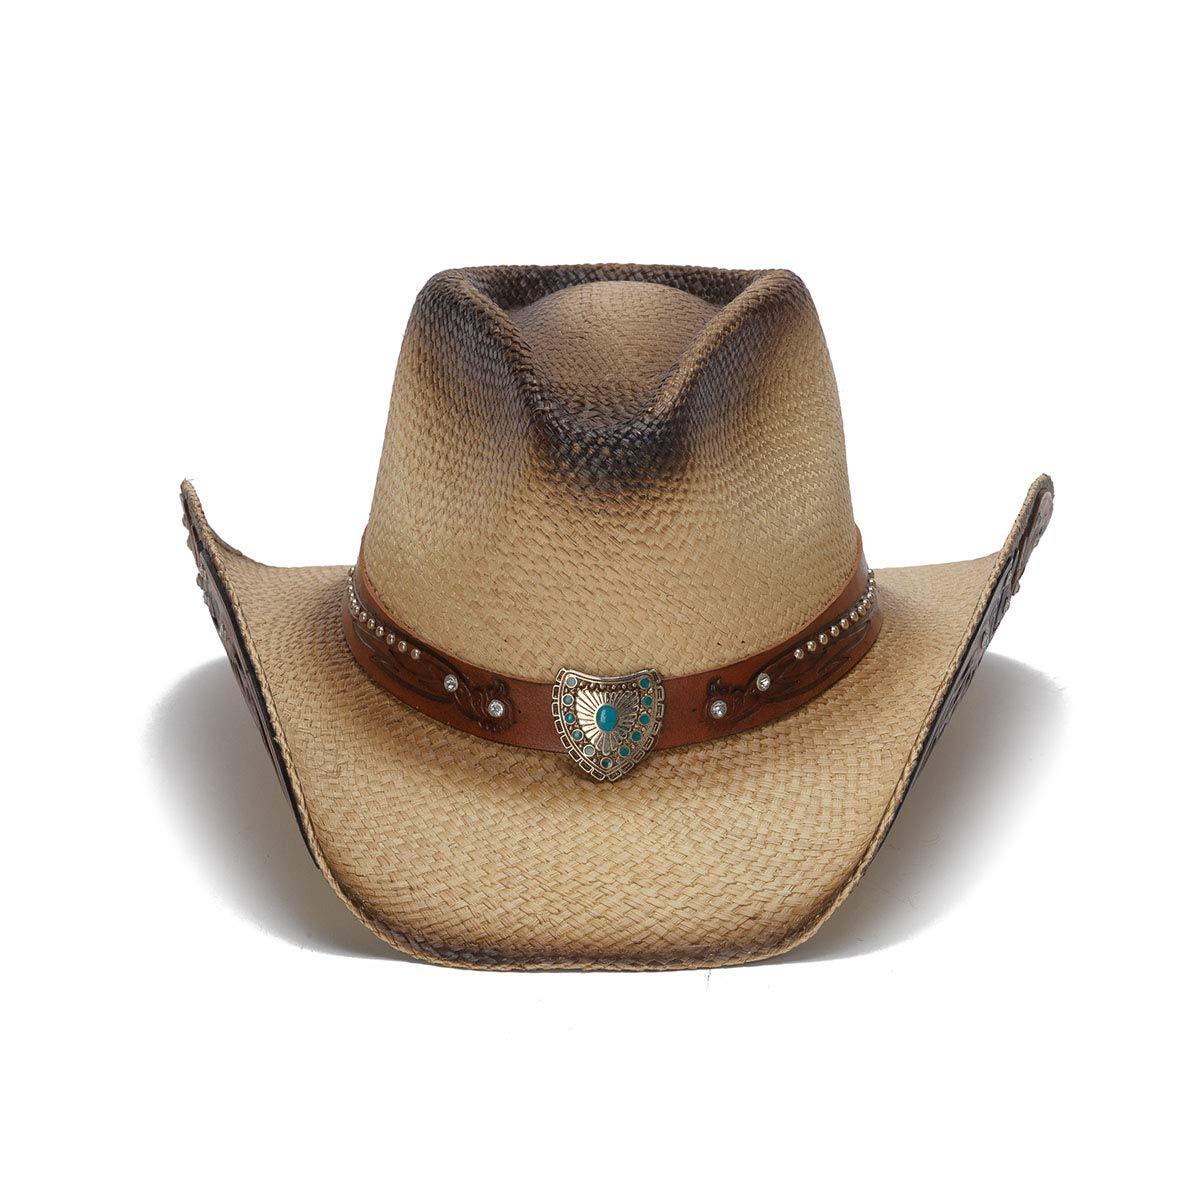 Stampede Hats Women's Concho Turquoise Wings Rhinestone Western Hat XS Tea Stain by Stampede Hats (Image #2)